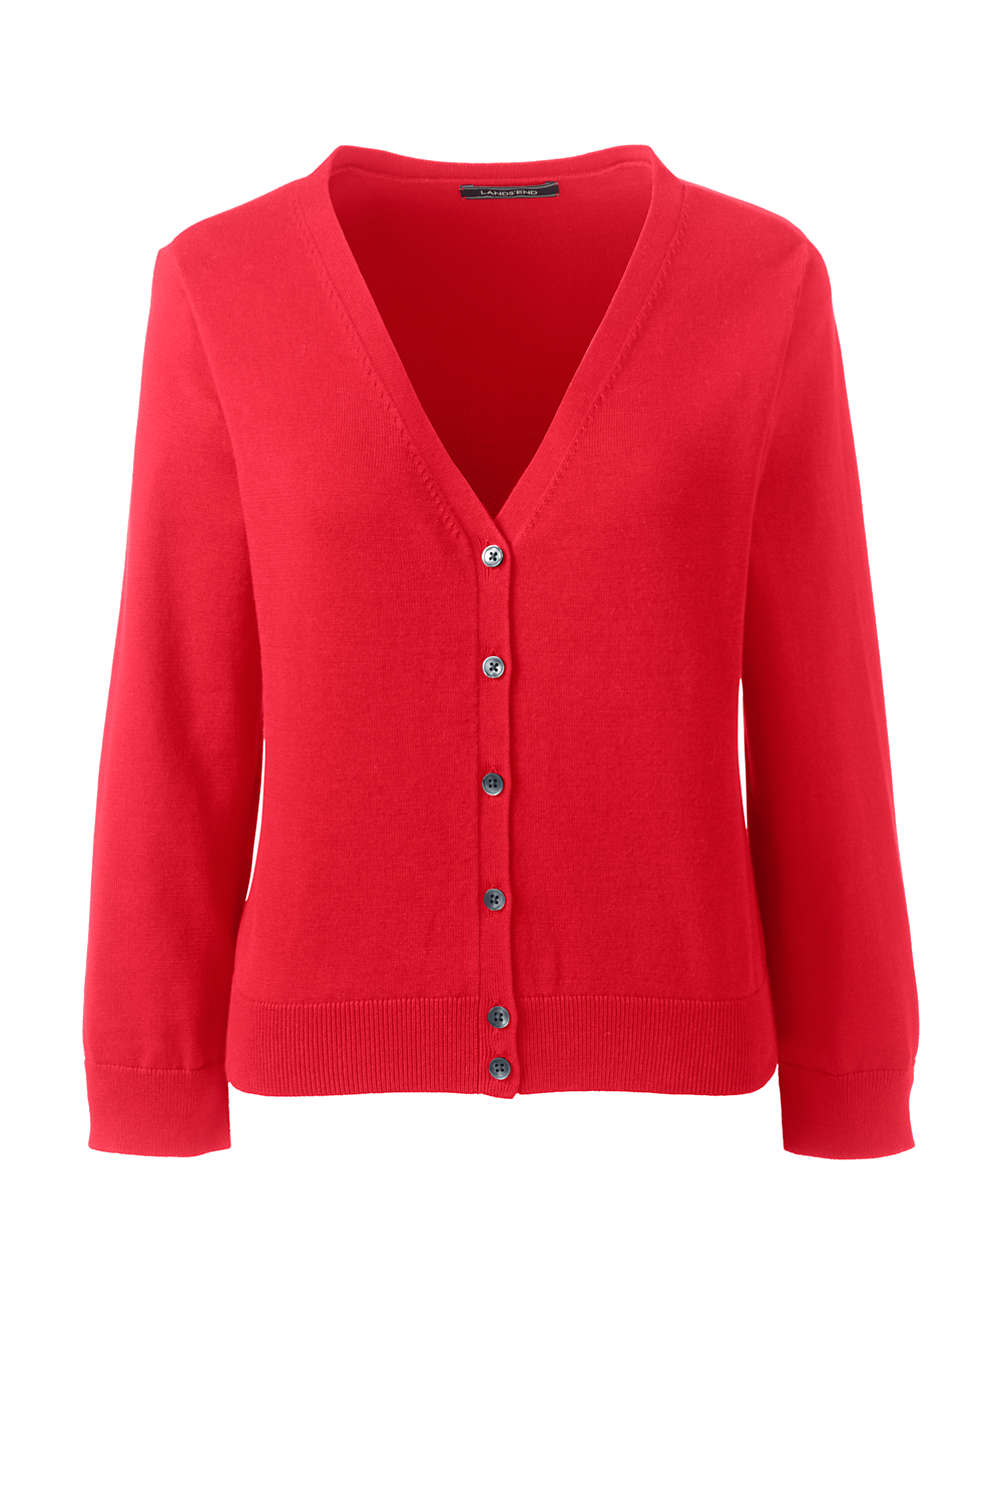 bc61623e31 Women s 3 4 Sleeve Supima Cardigan Sweater from Lands  End